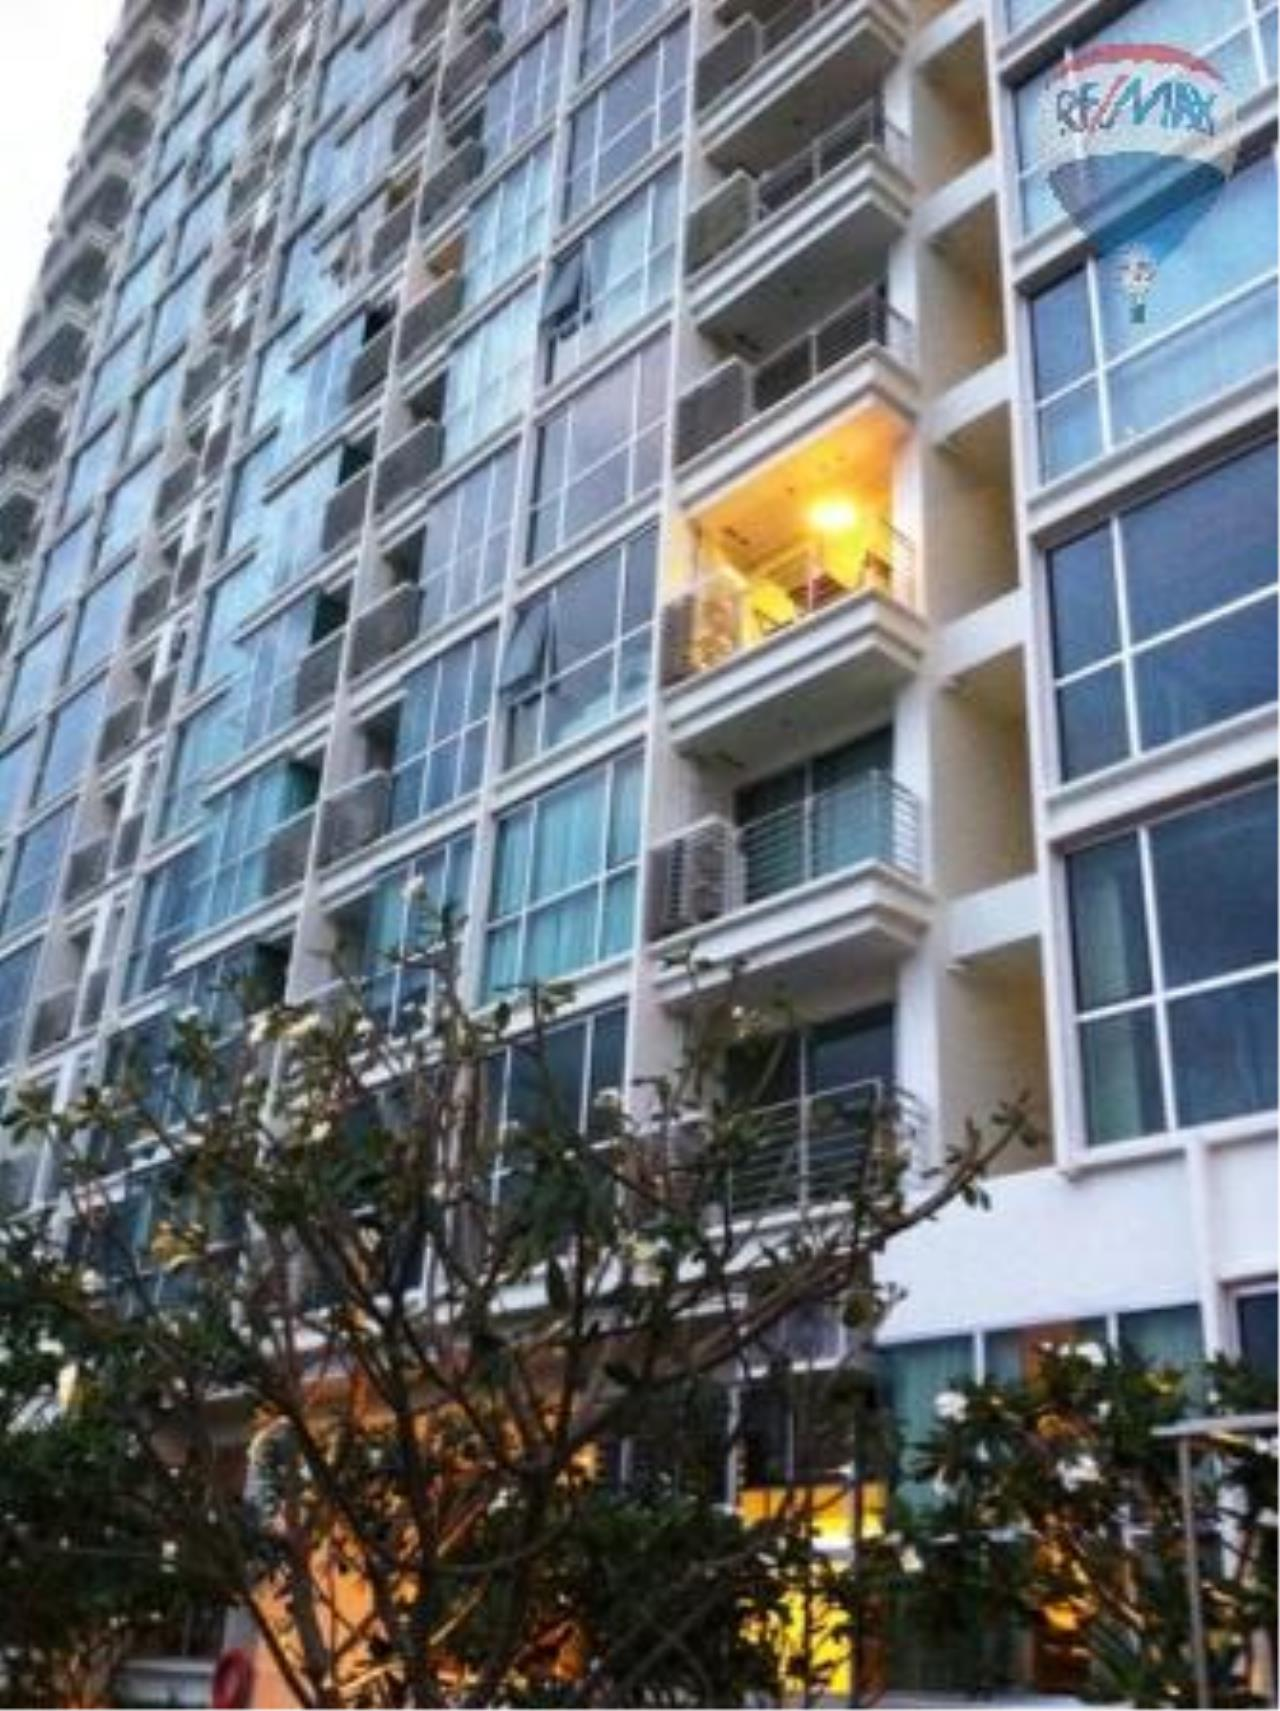 RE/MAX Properties Agency's Condominium for rent 1 bedroom 51 Sq.m. at Le Luk 9